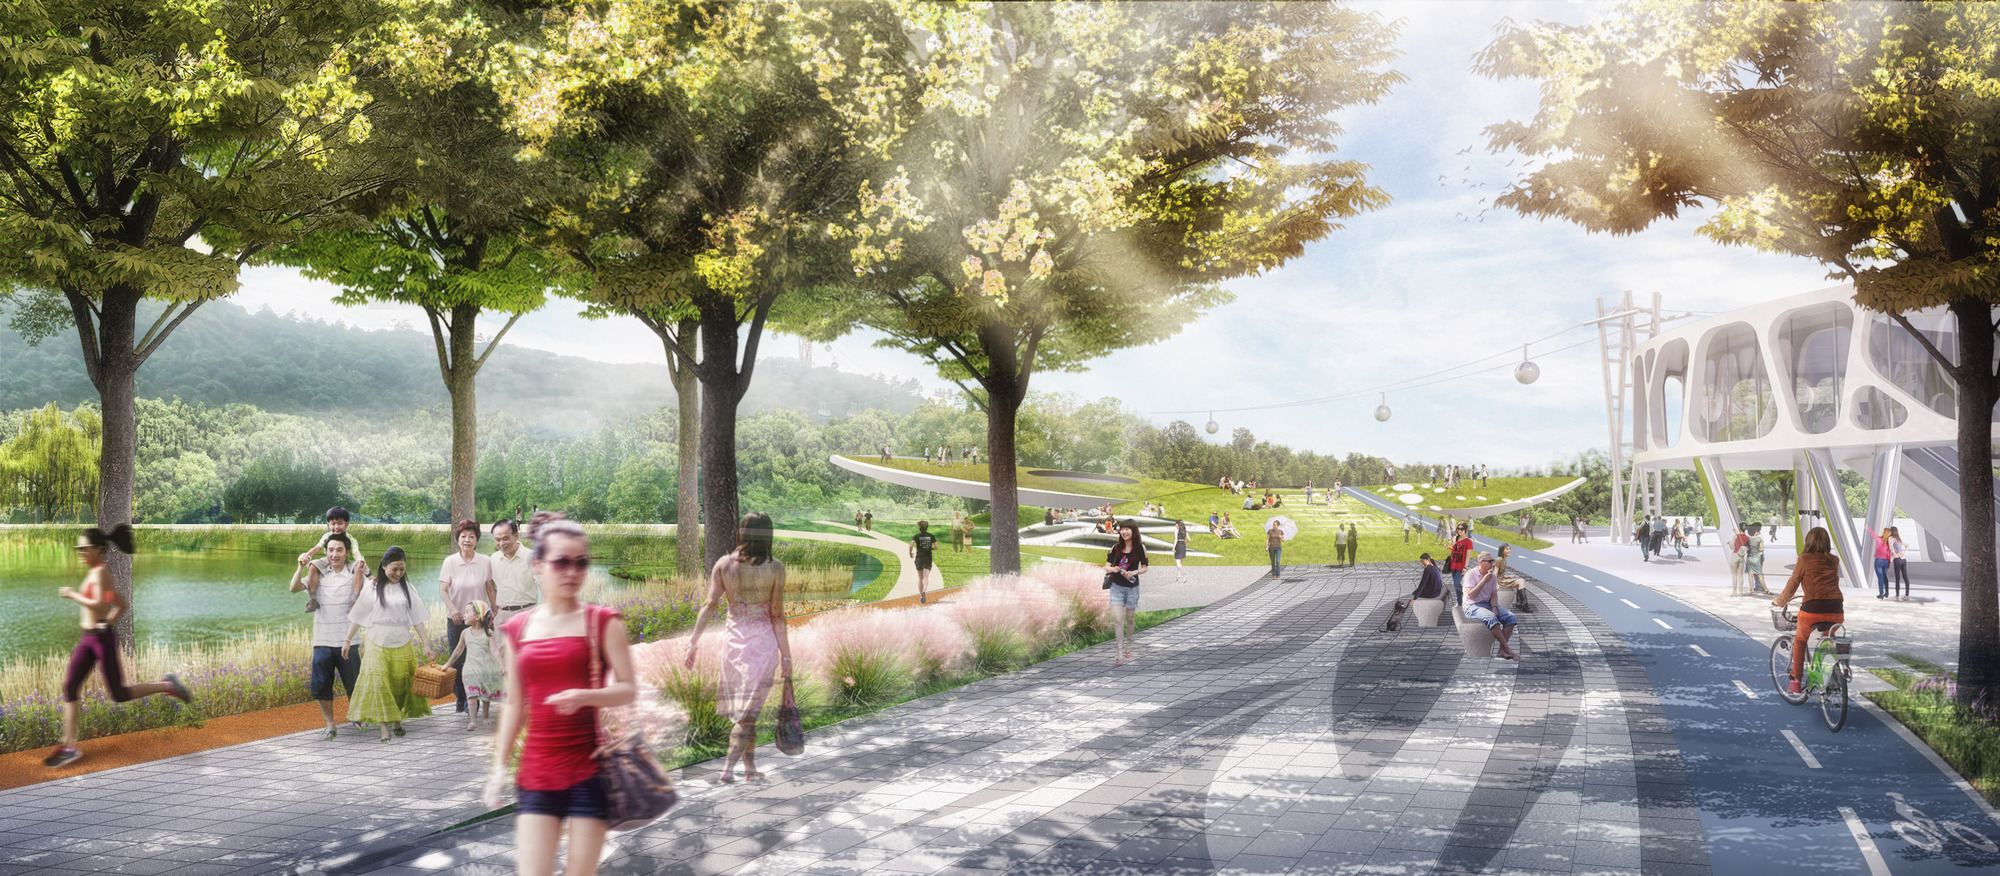 gallery of urban ecosystem design named winner of lion mountain park competition